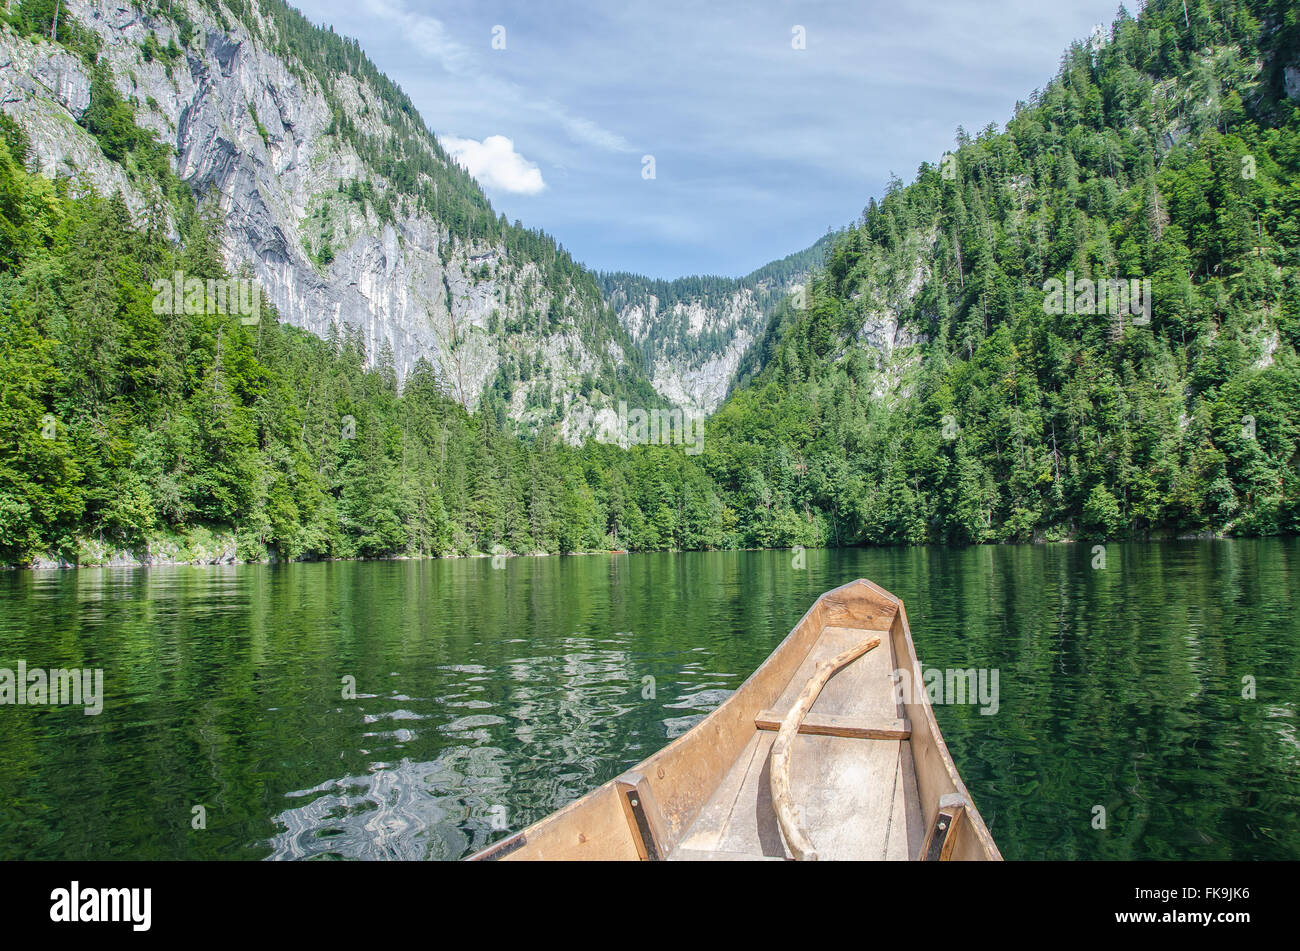 3 Lakes Tour: Lake Grundlsee, Lake Toplitzsee. Is there really gold from World War Two hidden in Lake Toplitzsee? Stock Photo